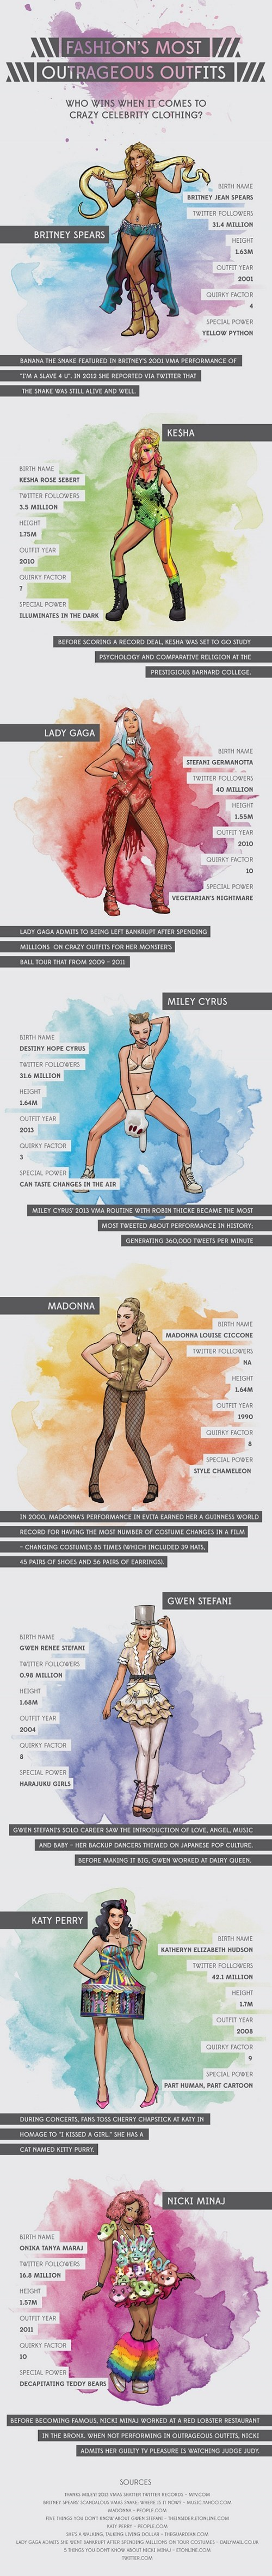 Music fashion infographic celeb